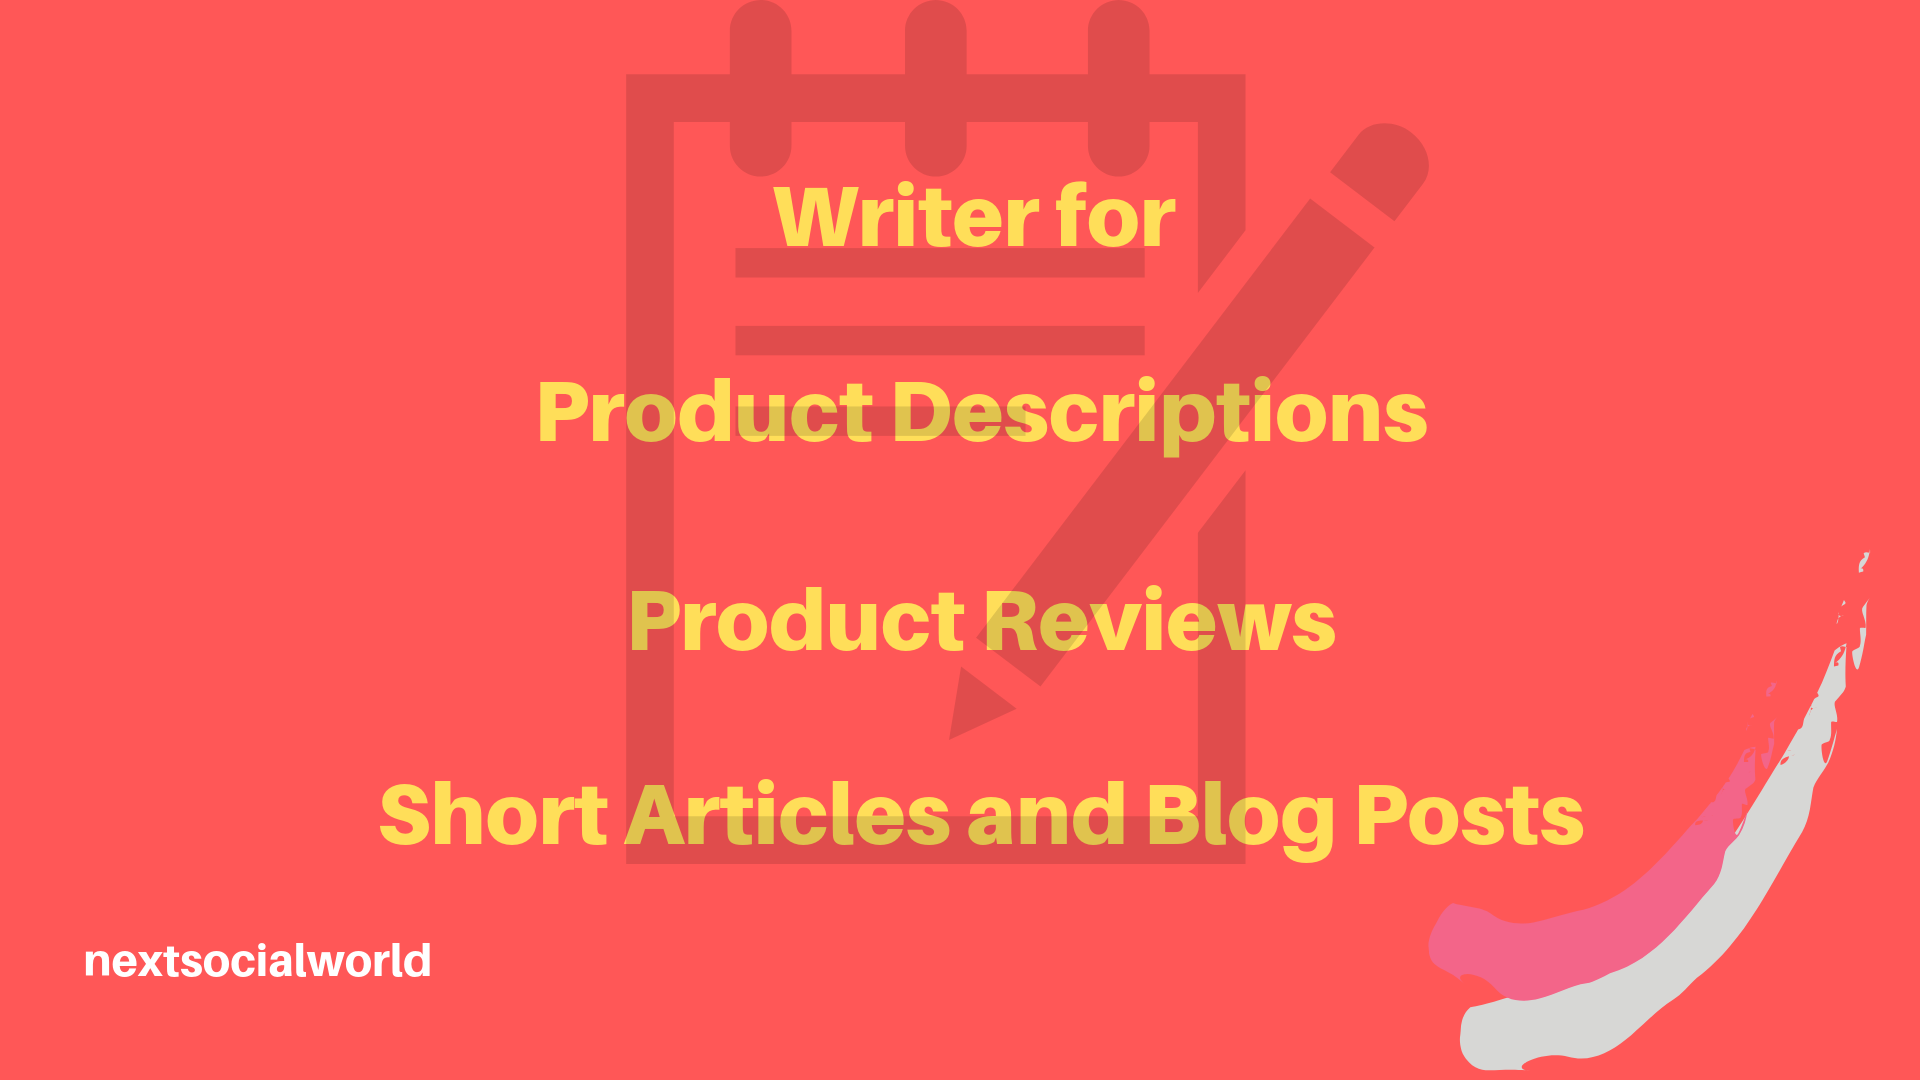 Writer for product descriptions, reviews, short articles and blog posts